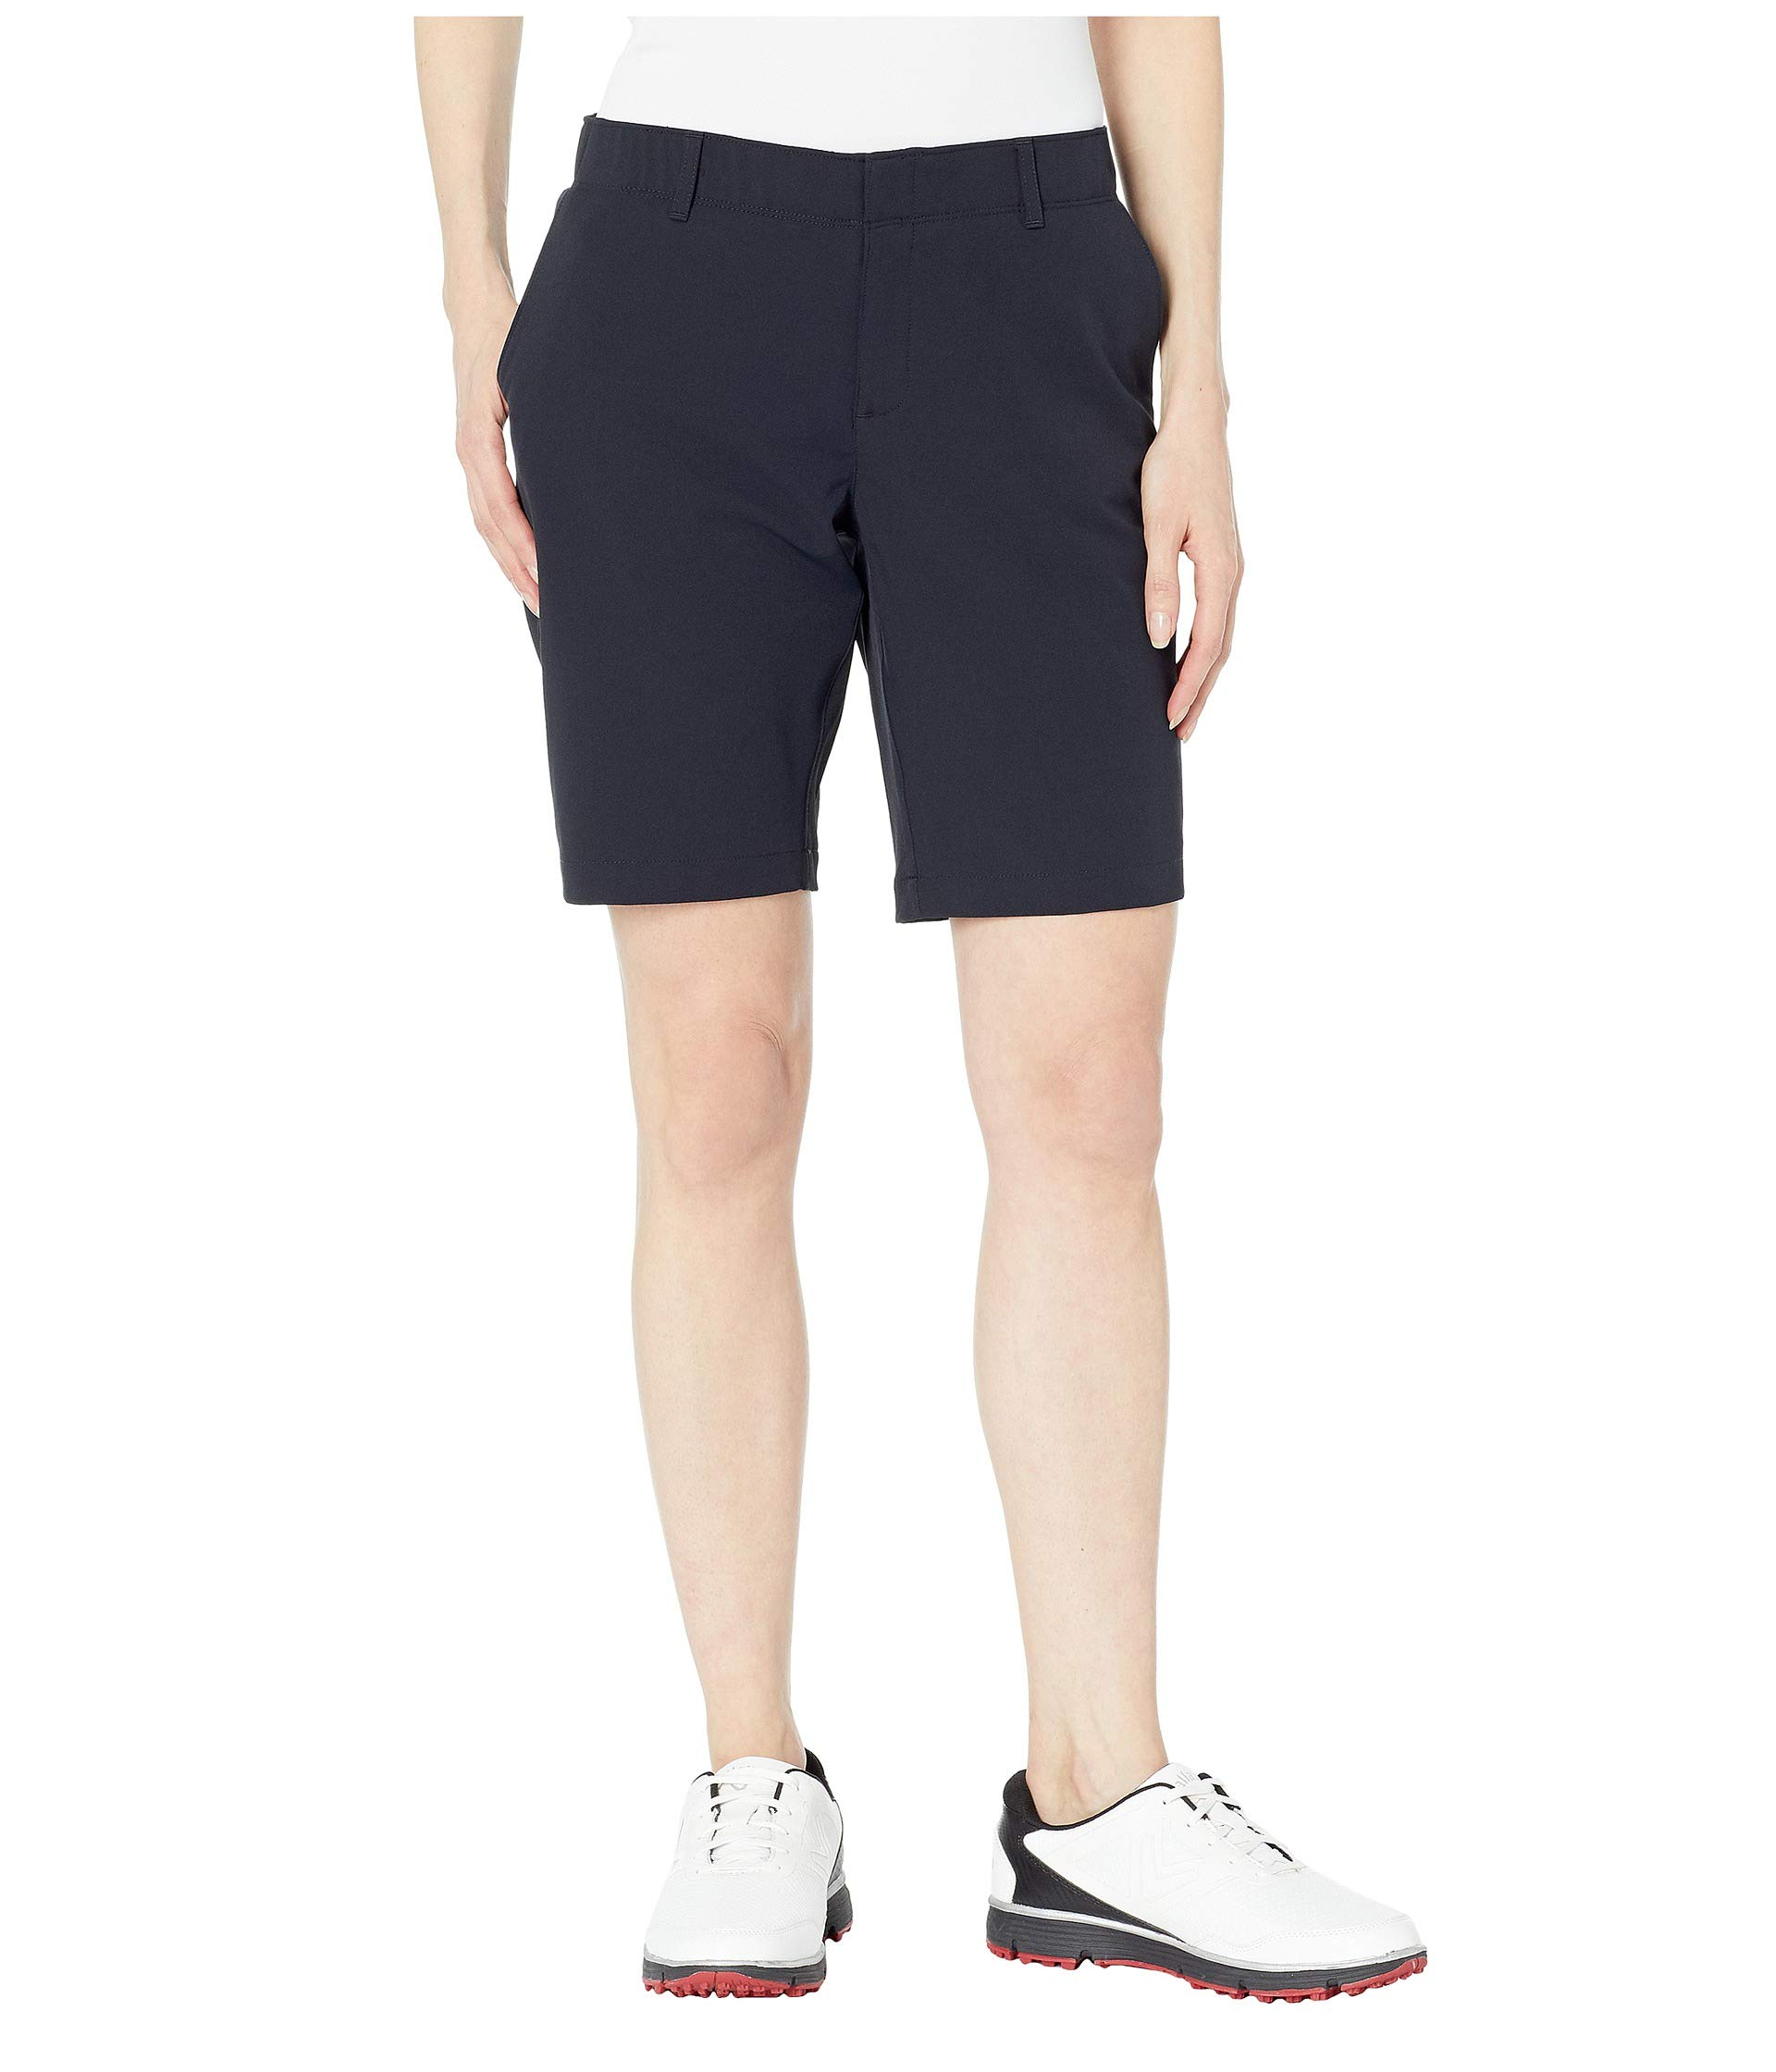 Under Armour Links Shorts, Black//Black, 8 by Under Armour